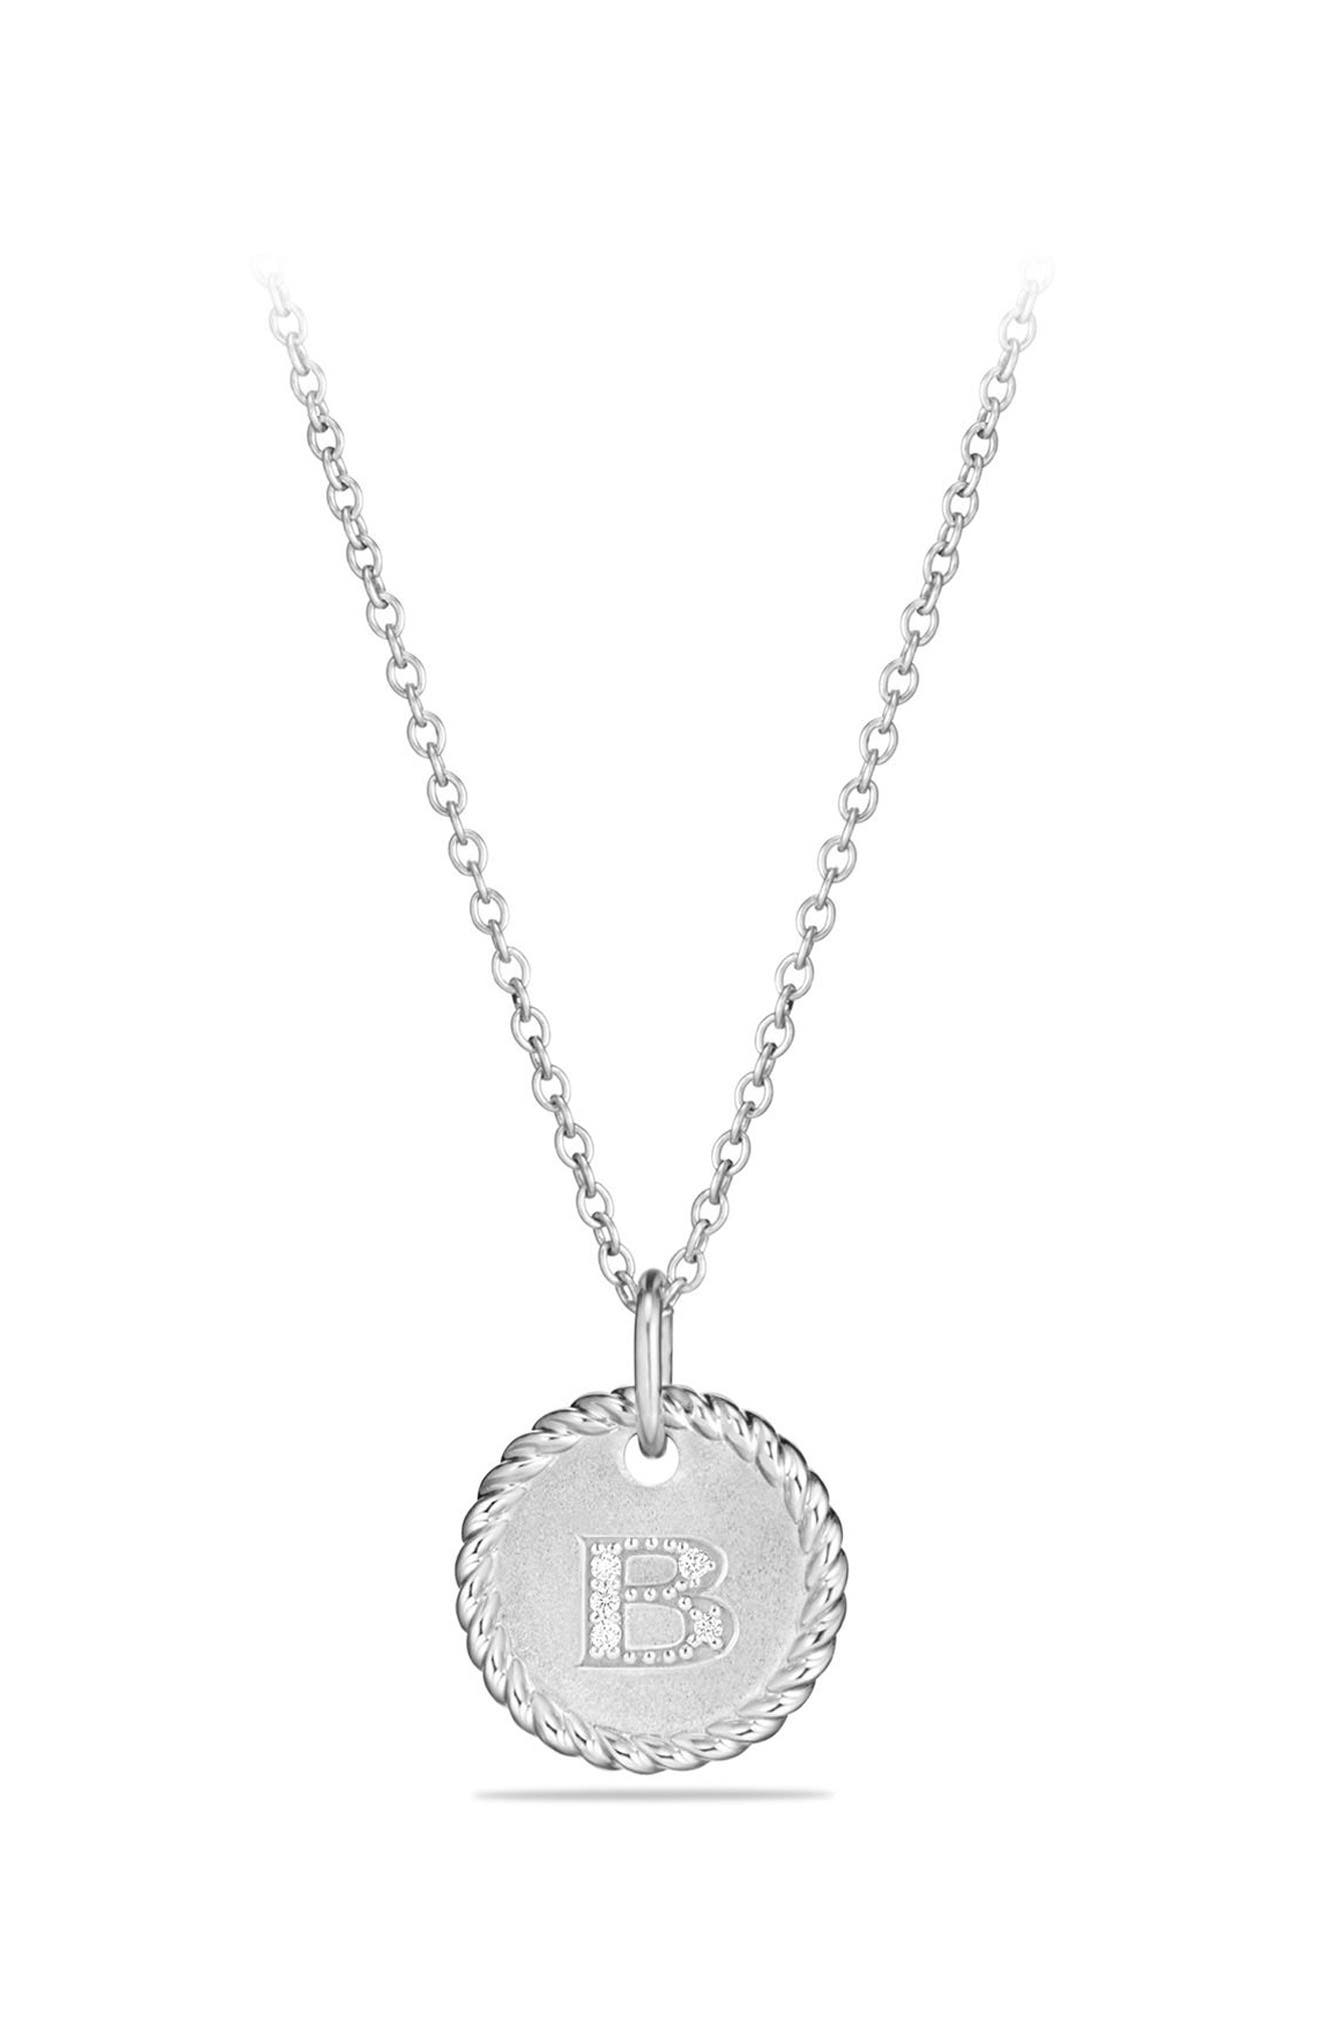 Initial Charm Necklace with Diamonds in 18K White Gold,                         Main,                         color, B